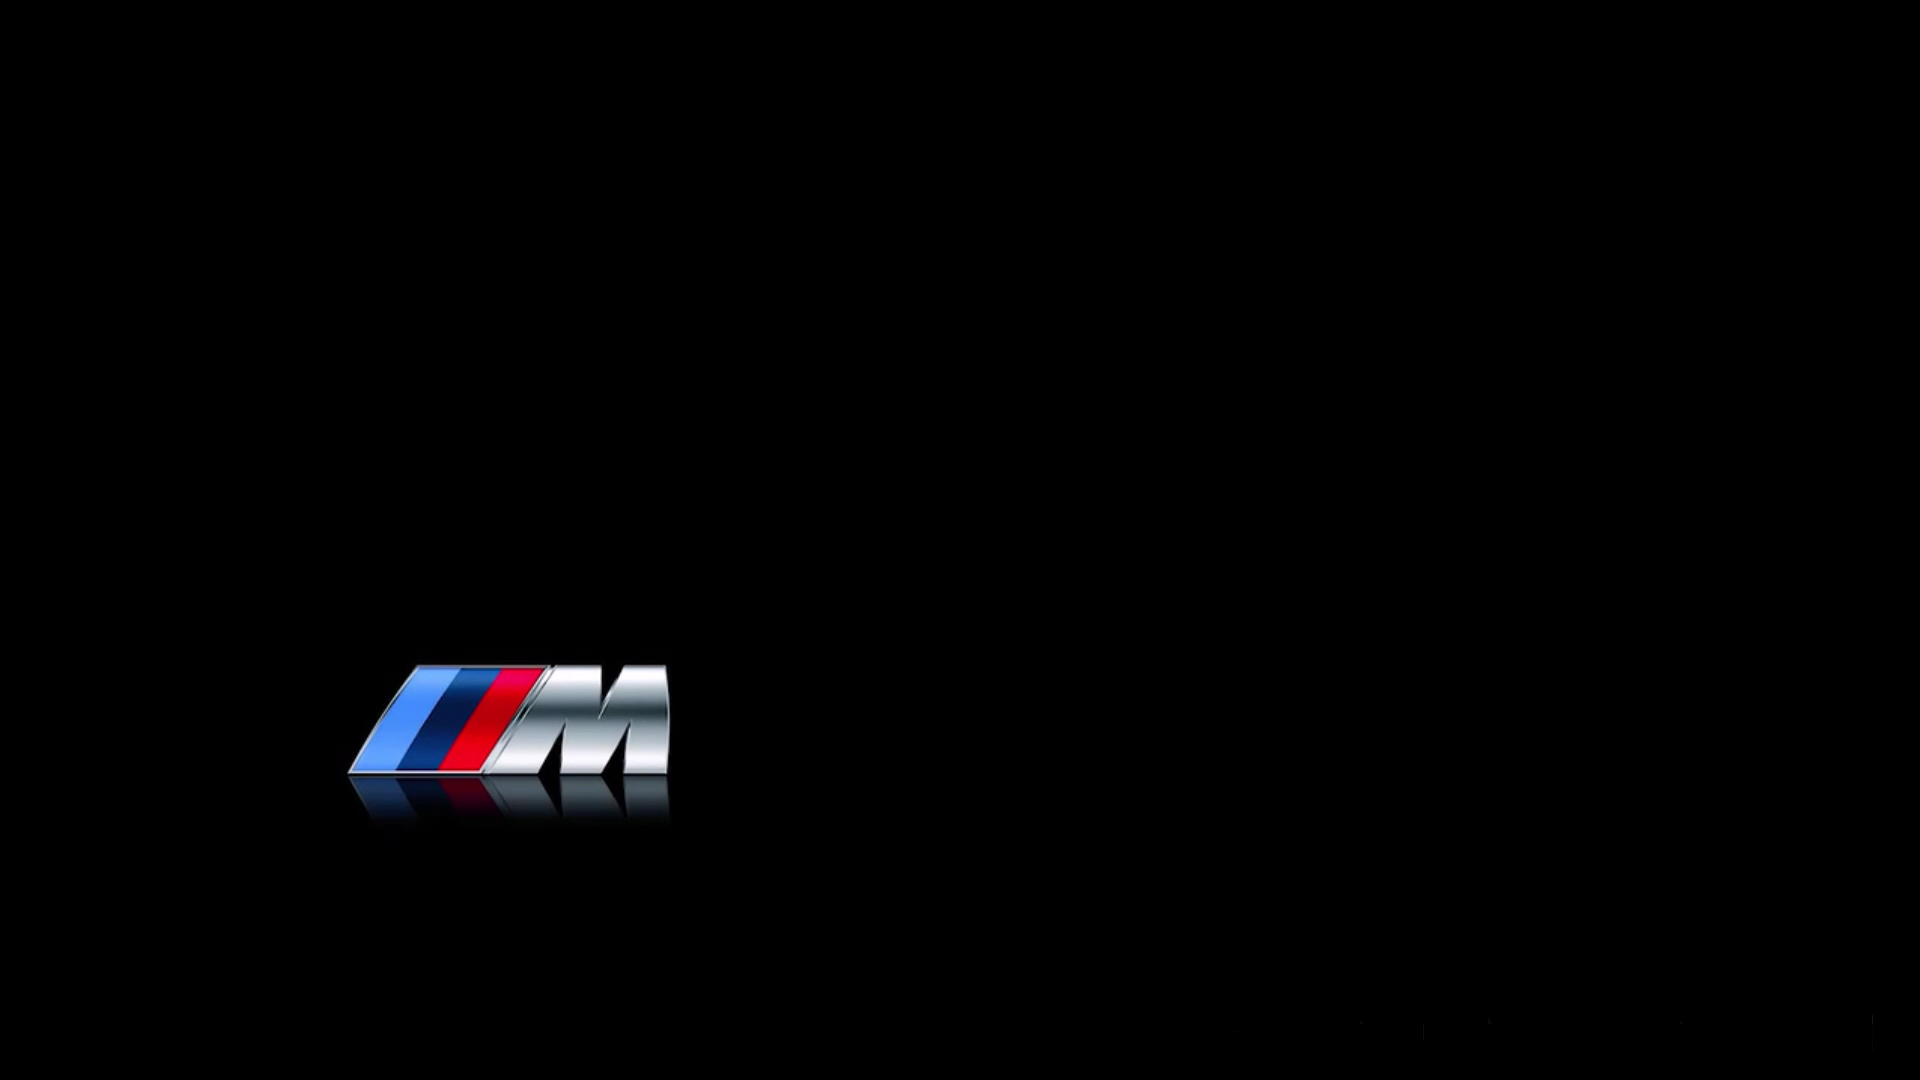 Bmw M Logo Wallpapers 1920x1080